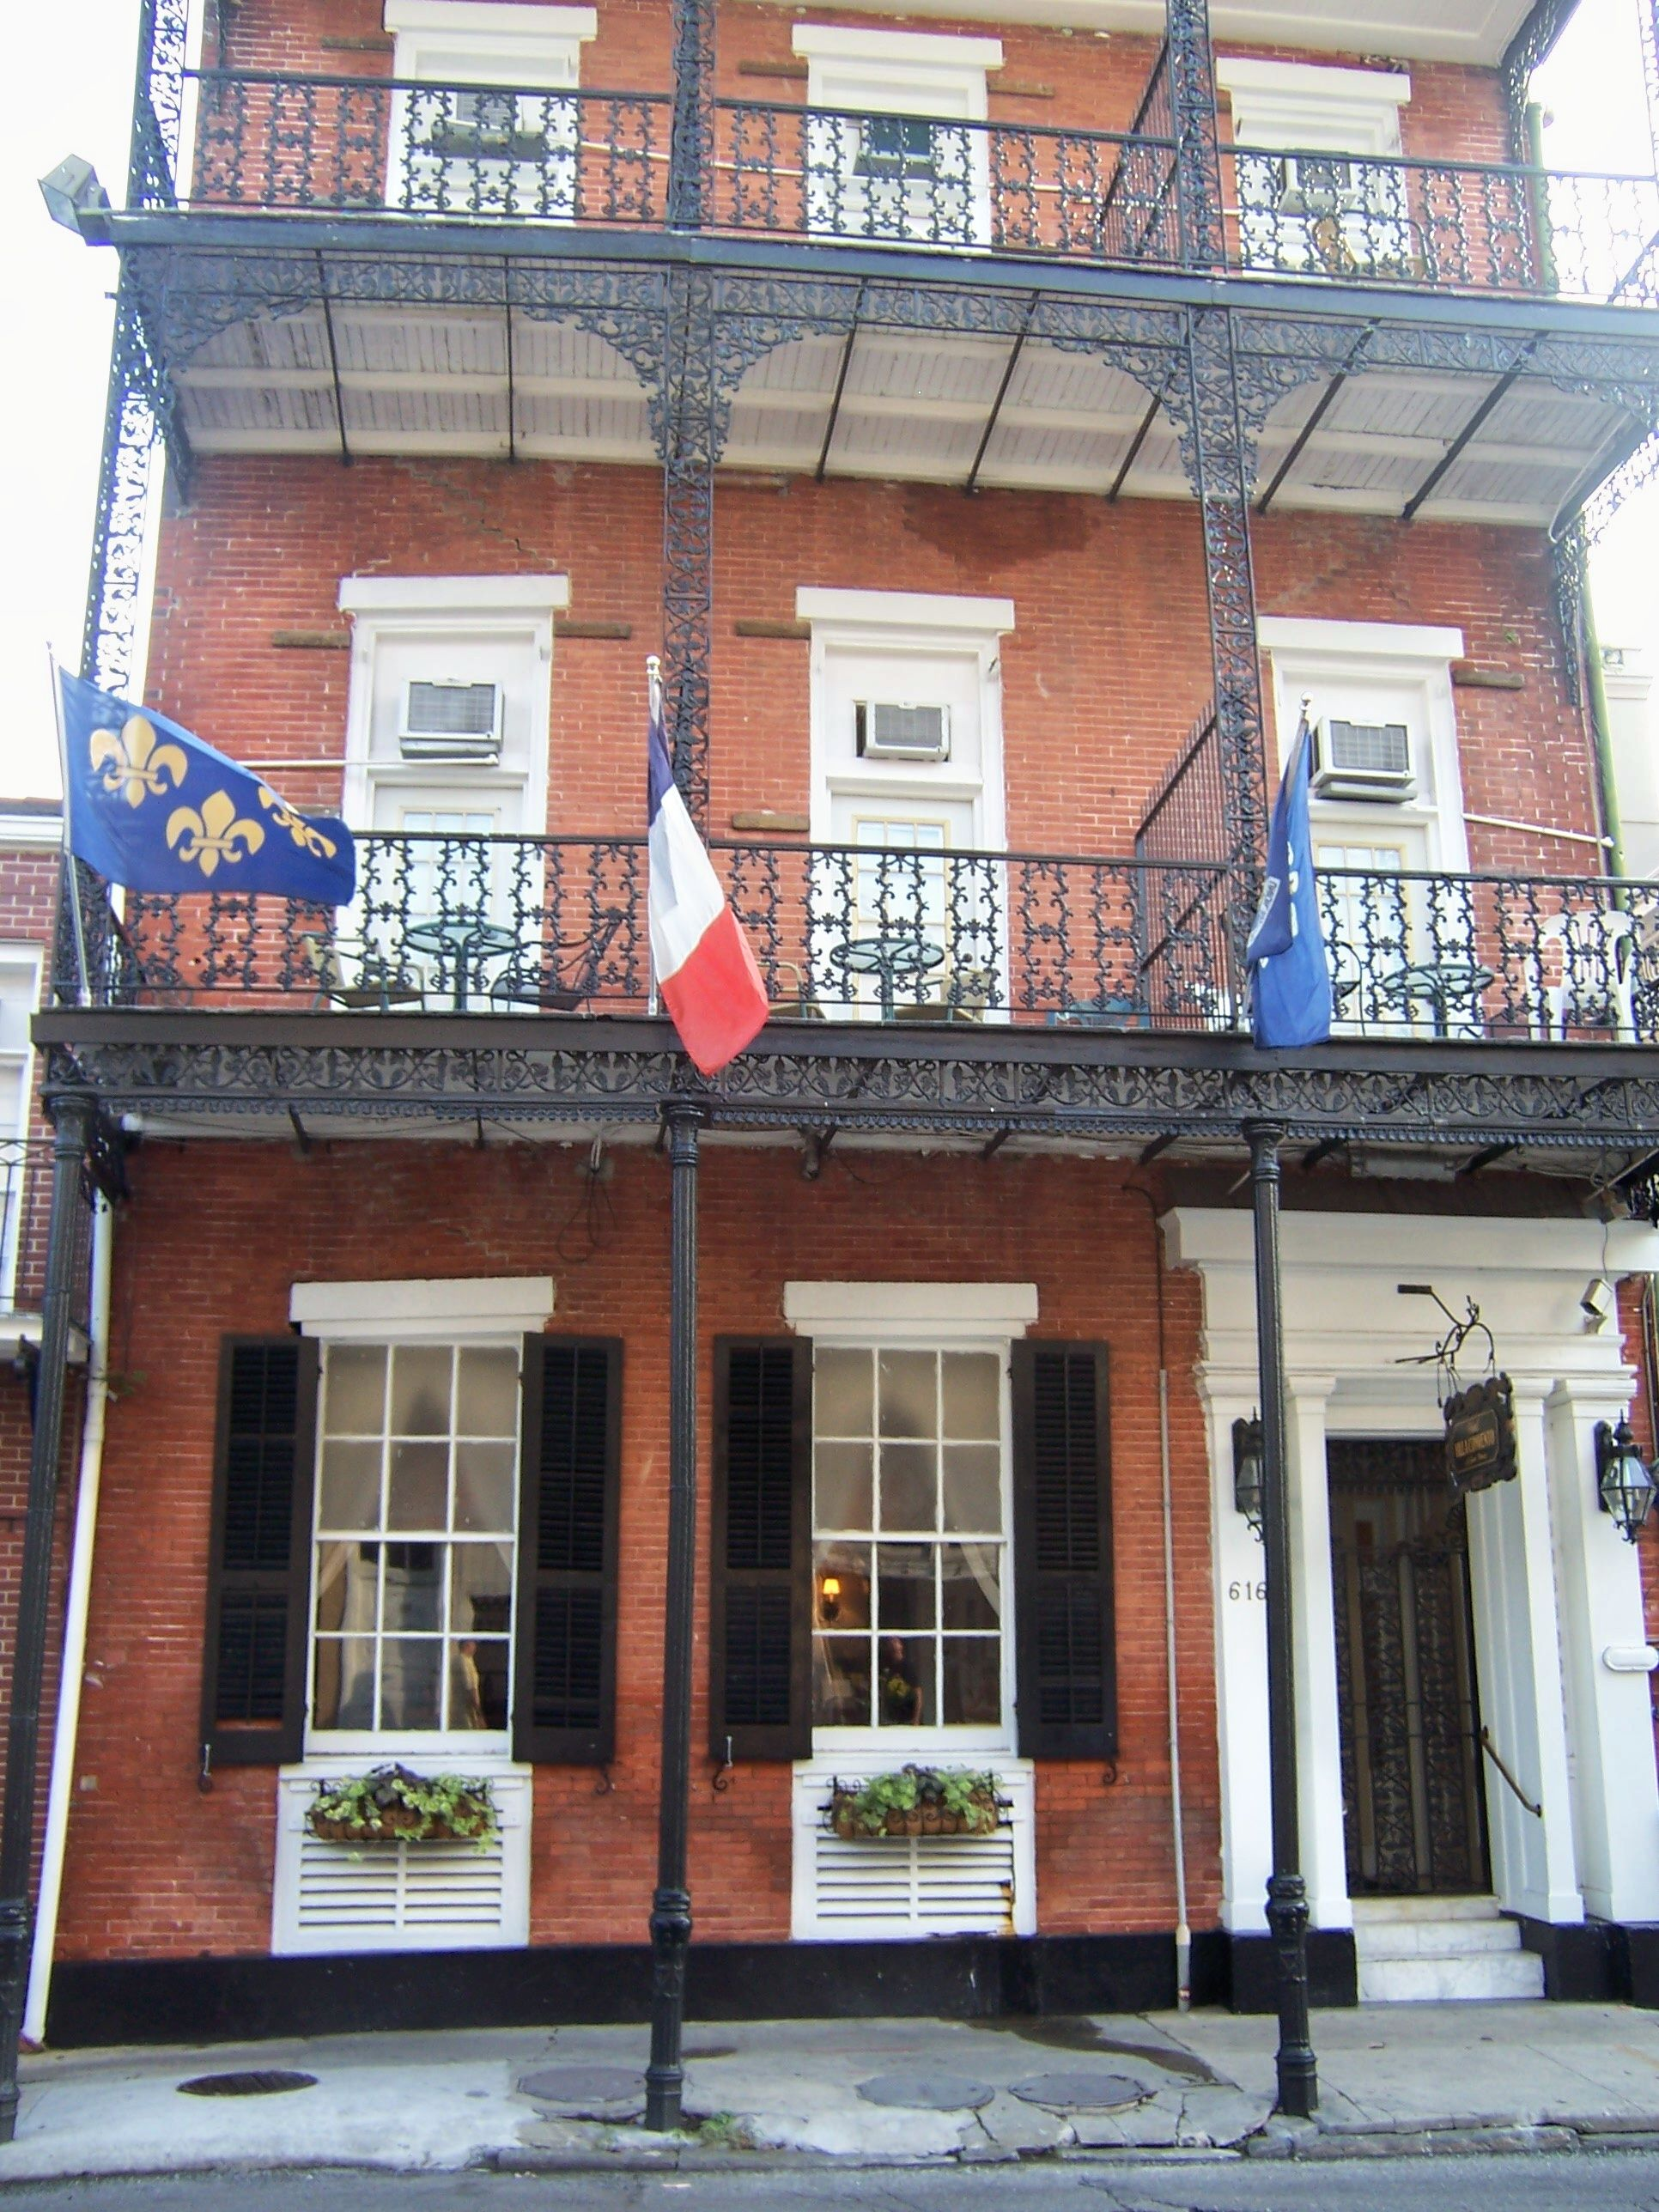 hotel villa convento new orleans our favorite place to stay said rh pinterest com